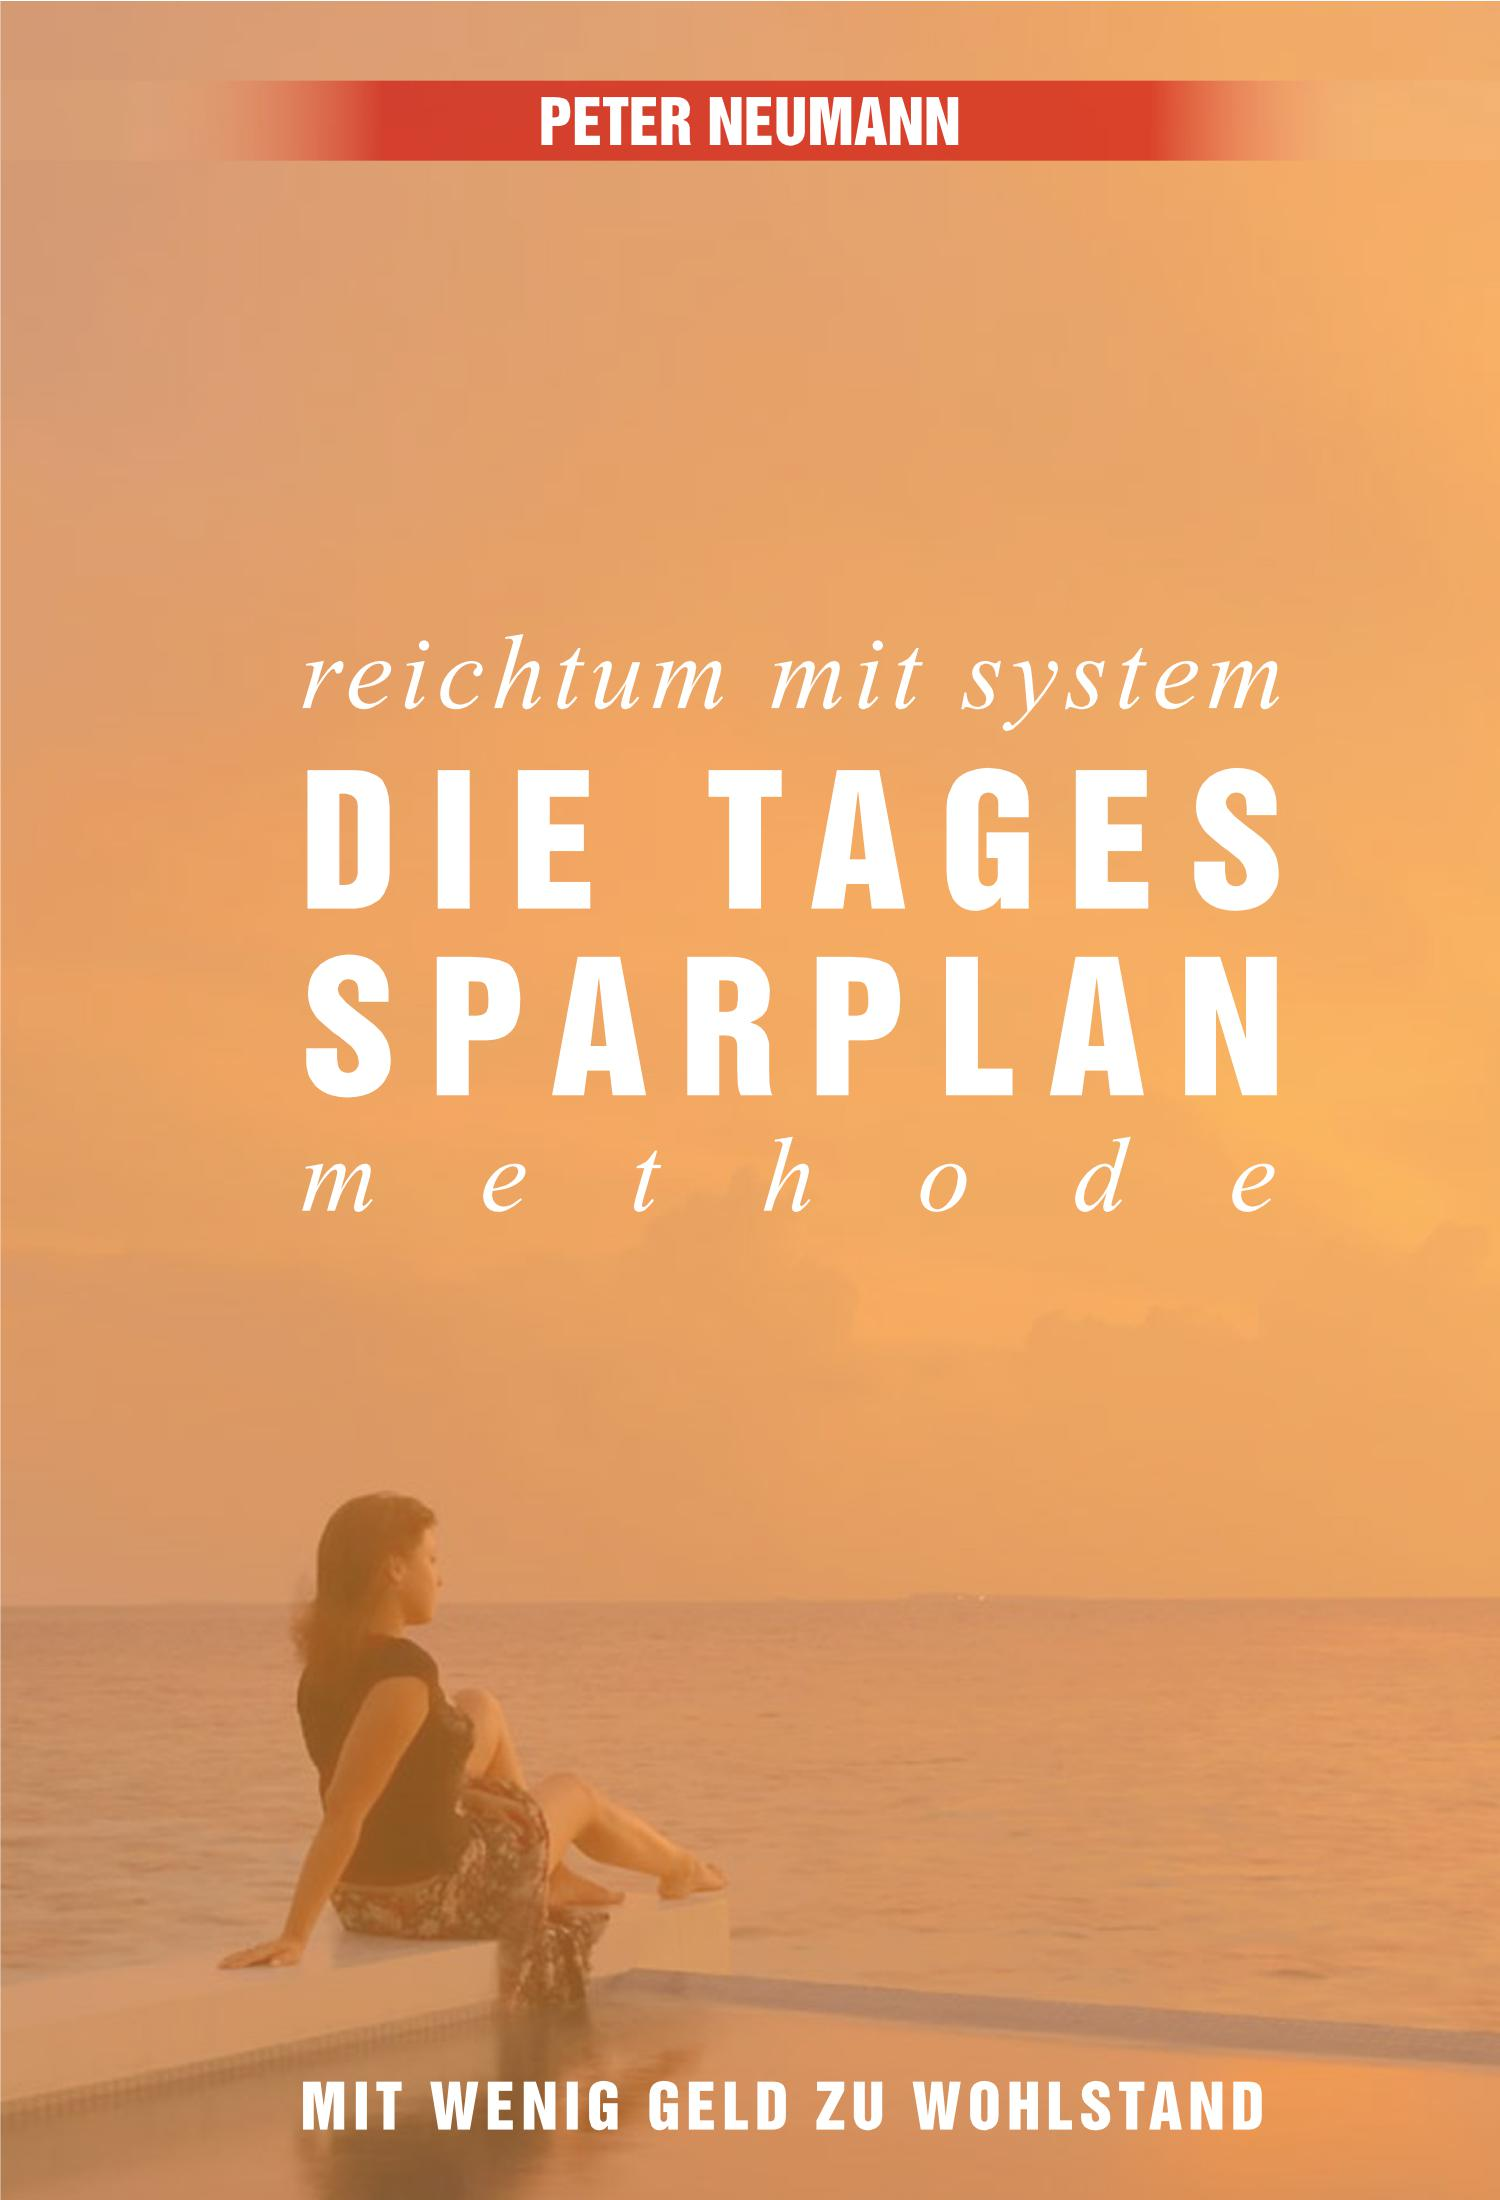 Cover - eBook - Die Tagessparplan-Methode - V2.7 - 72 DPI.jpeg